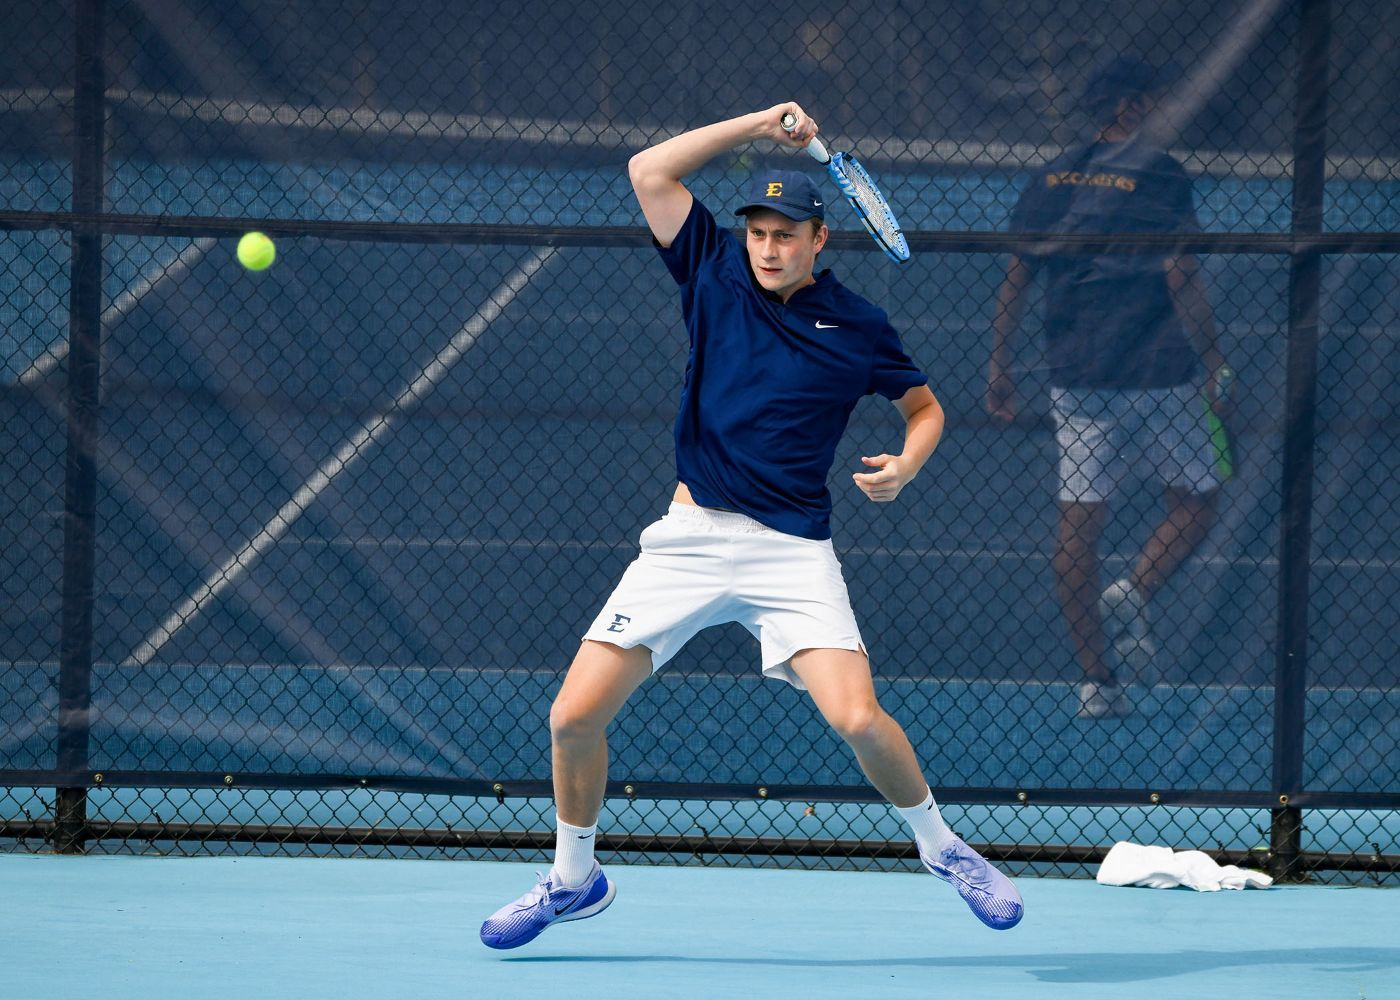 Bucs Remain Unscathed in SoCon Action